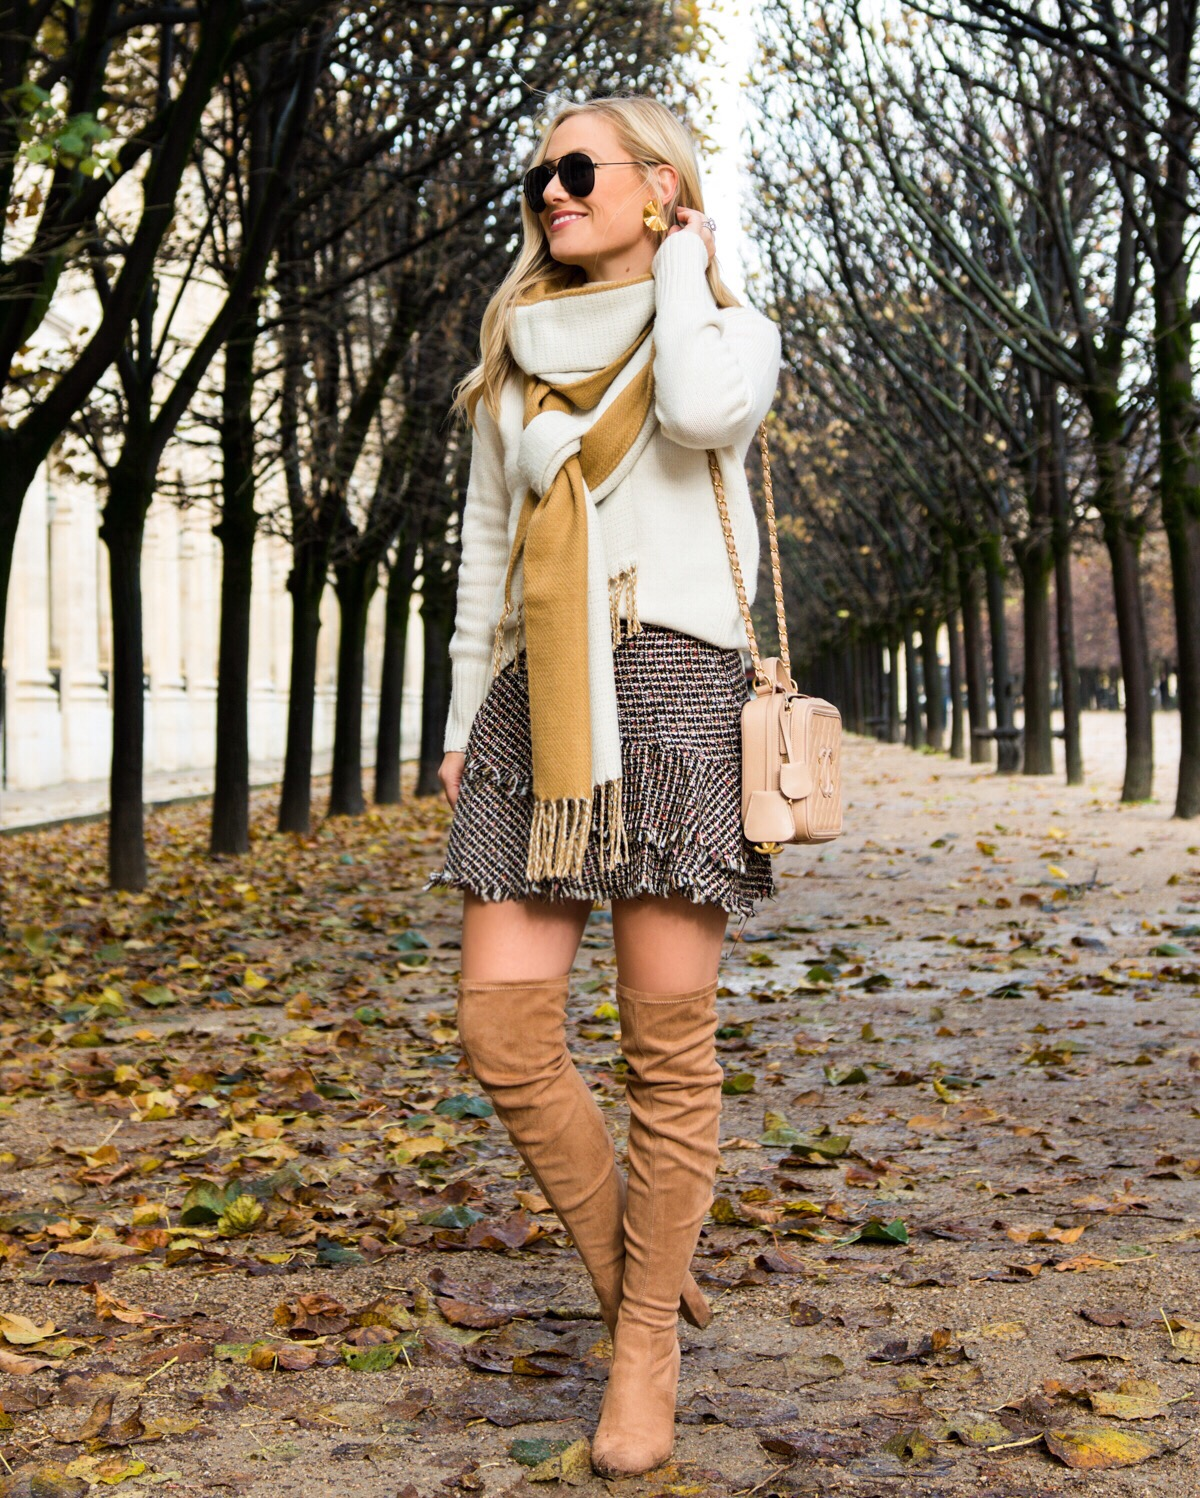 Lo-Murphy-Fall-outfit-mini-skirt-fall-look-ootd-dallas-blogger-otk-boots-fall-style